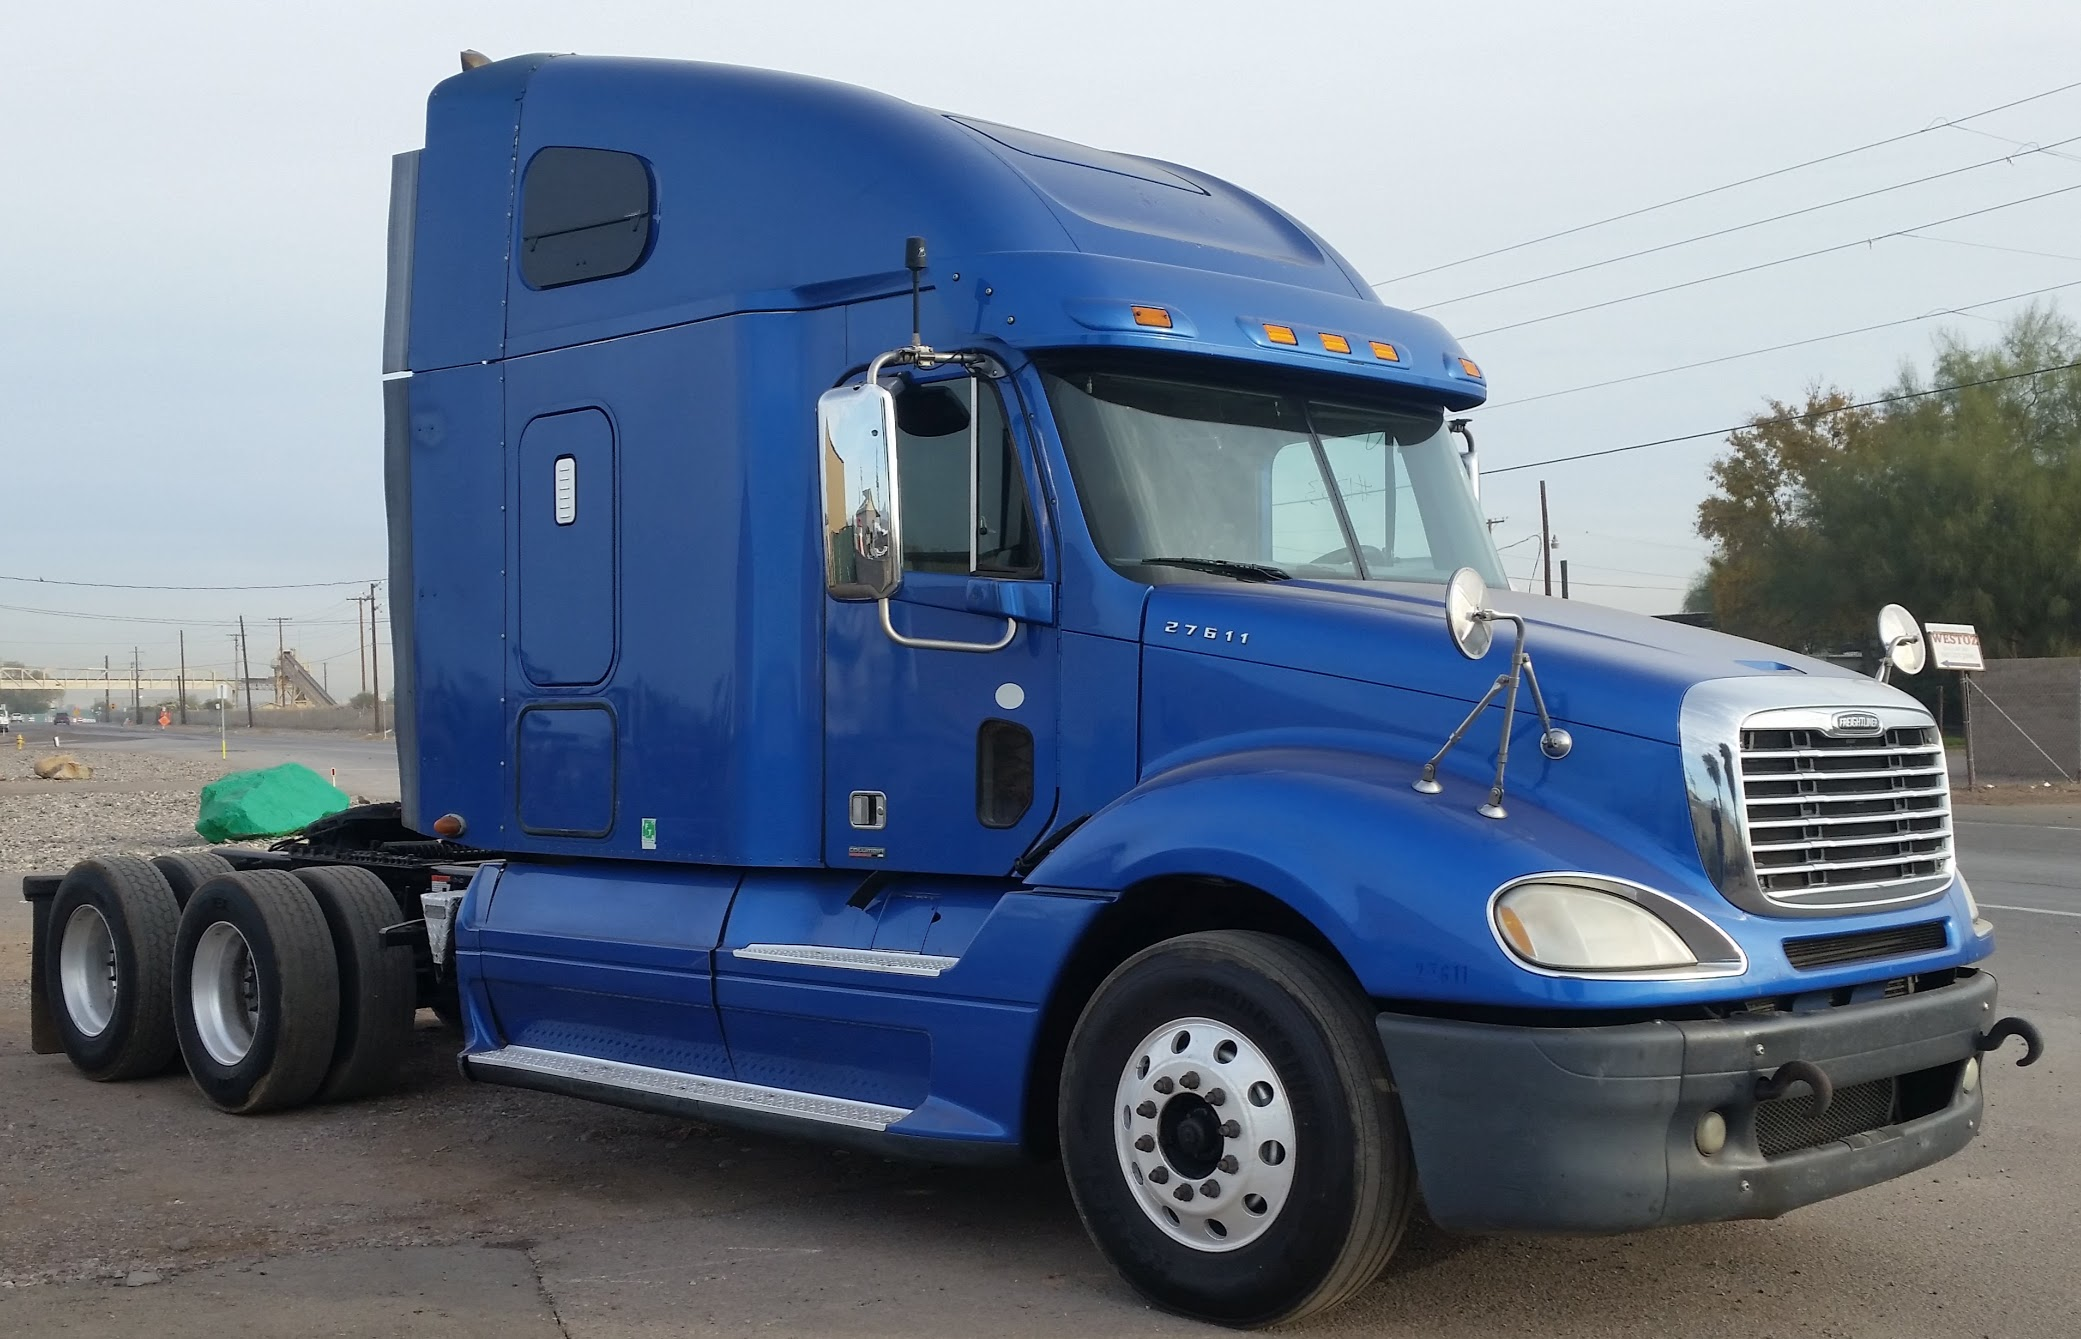 used trucks truck road vo volvo driving semi a the sale for along canada